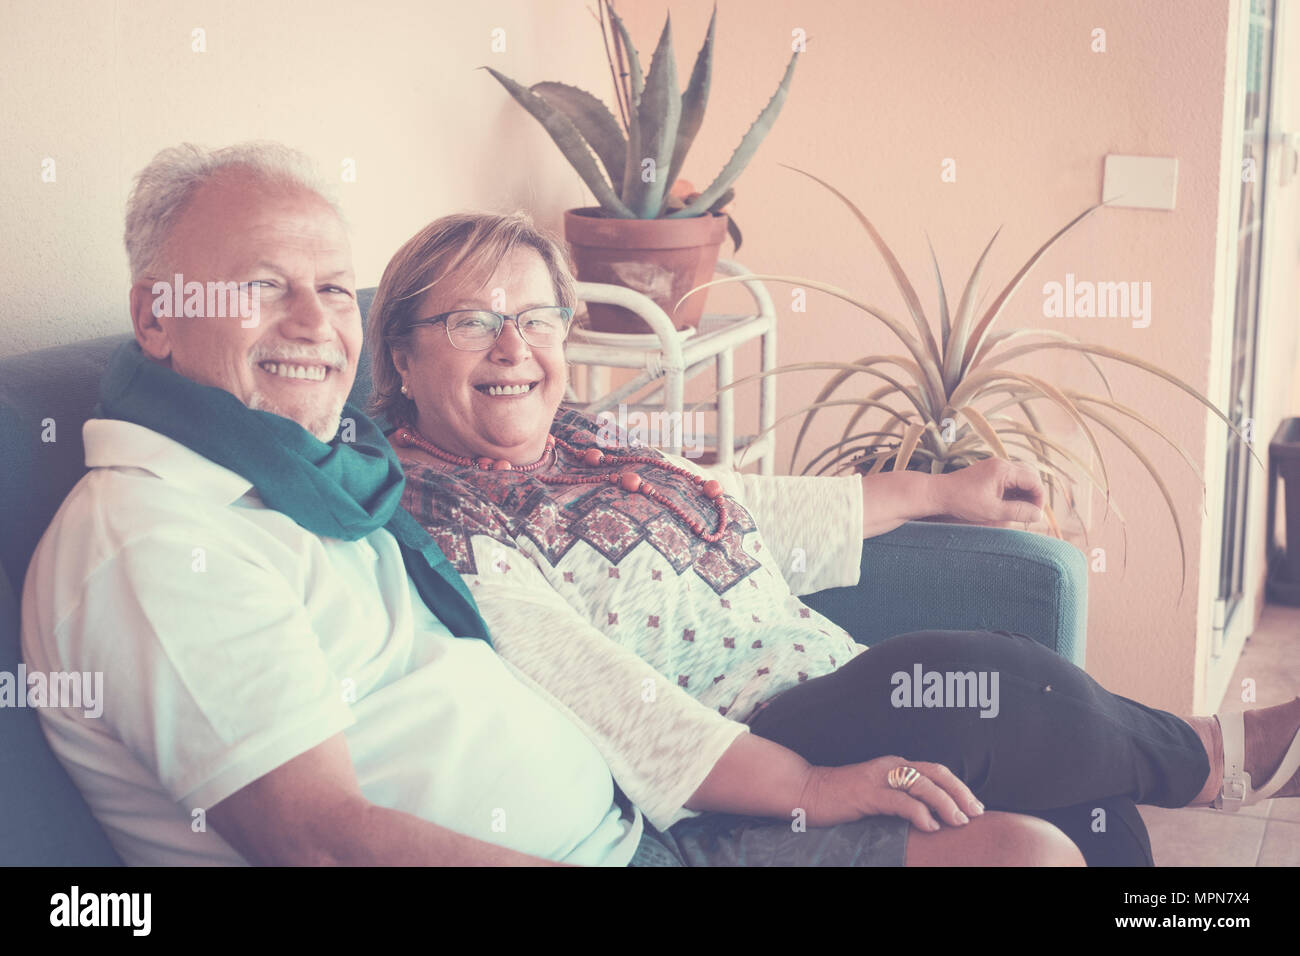 Elderly grandfather couple sitting on the sofa in the terrae. leisure nice time with fun and smiles. Vintage bright filter. - Stock Image